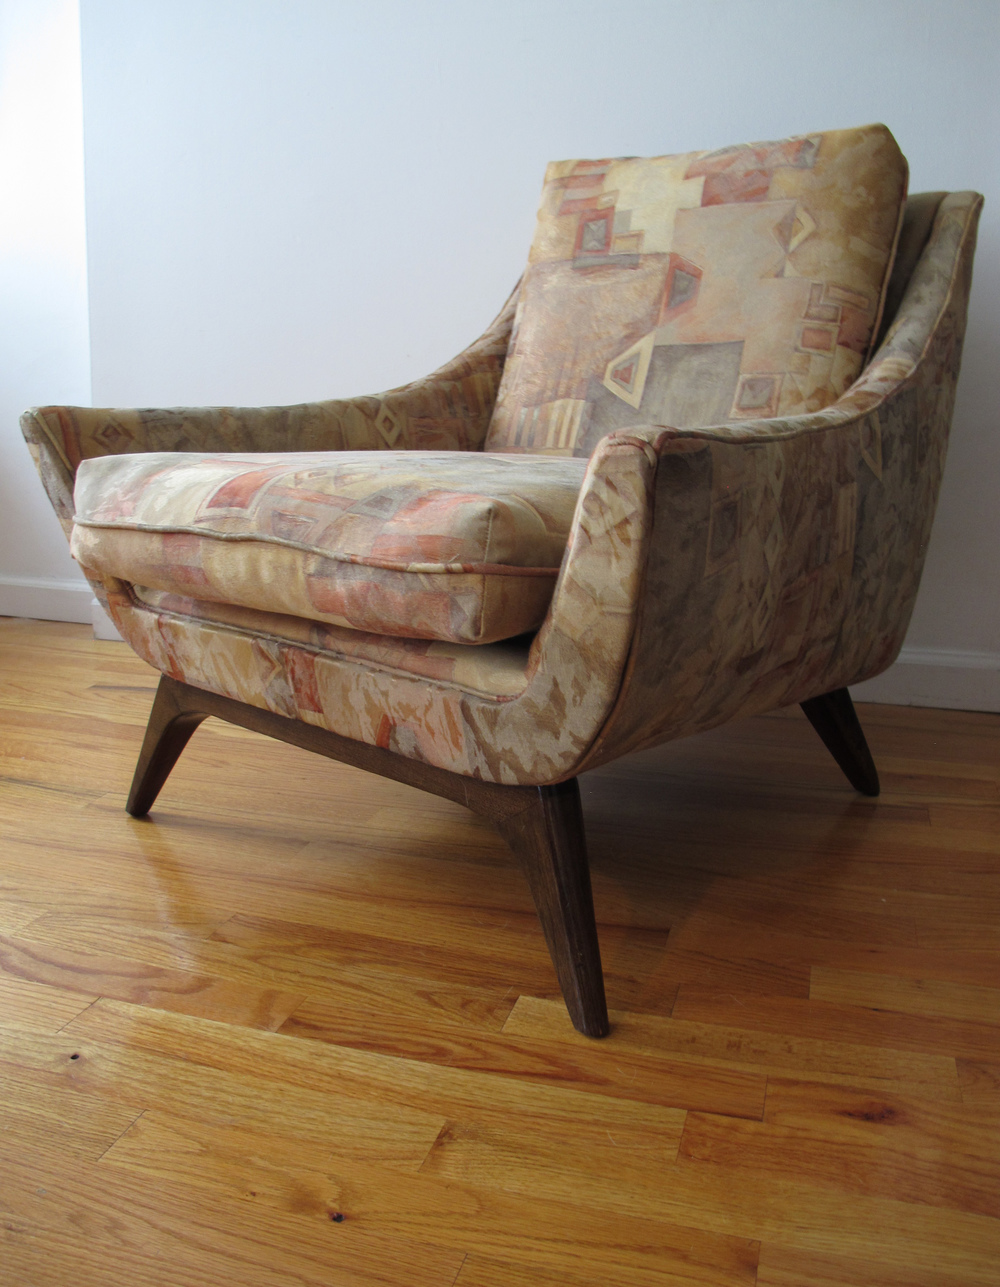 MID CENTURY LOUNGE CHAIR BY ADRIAN PEARSALL